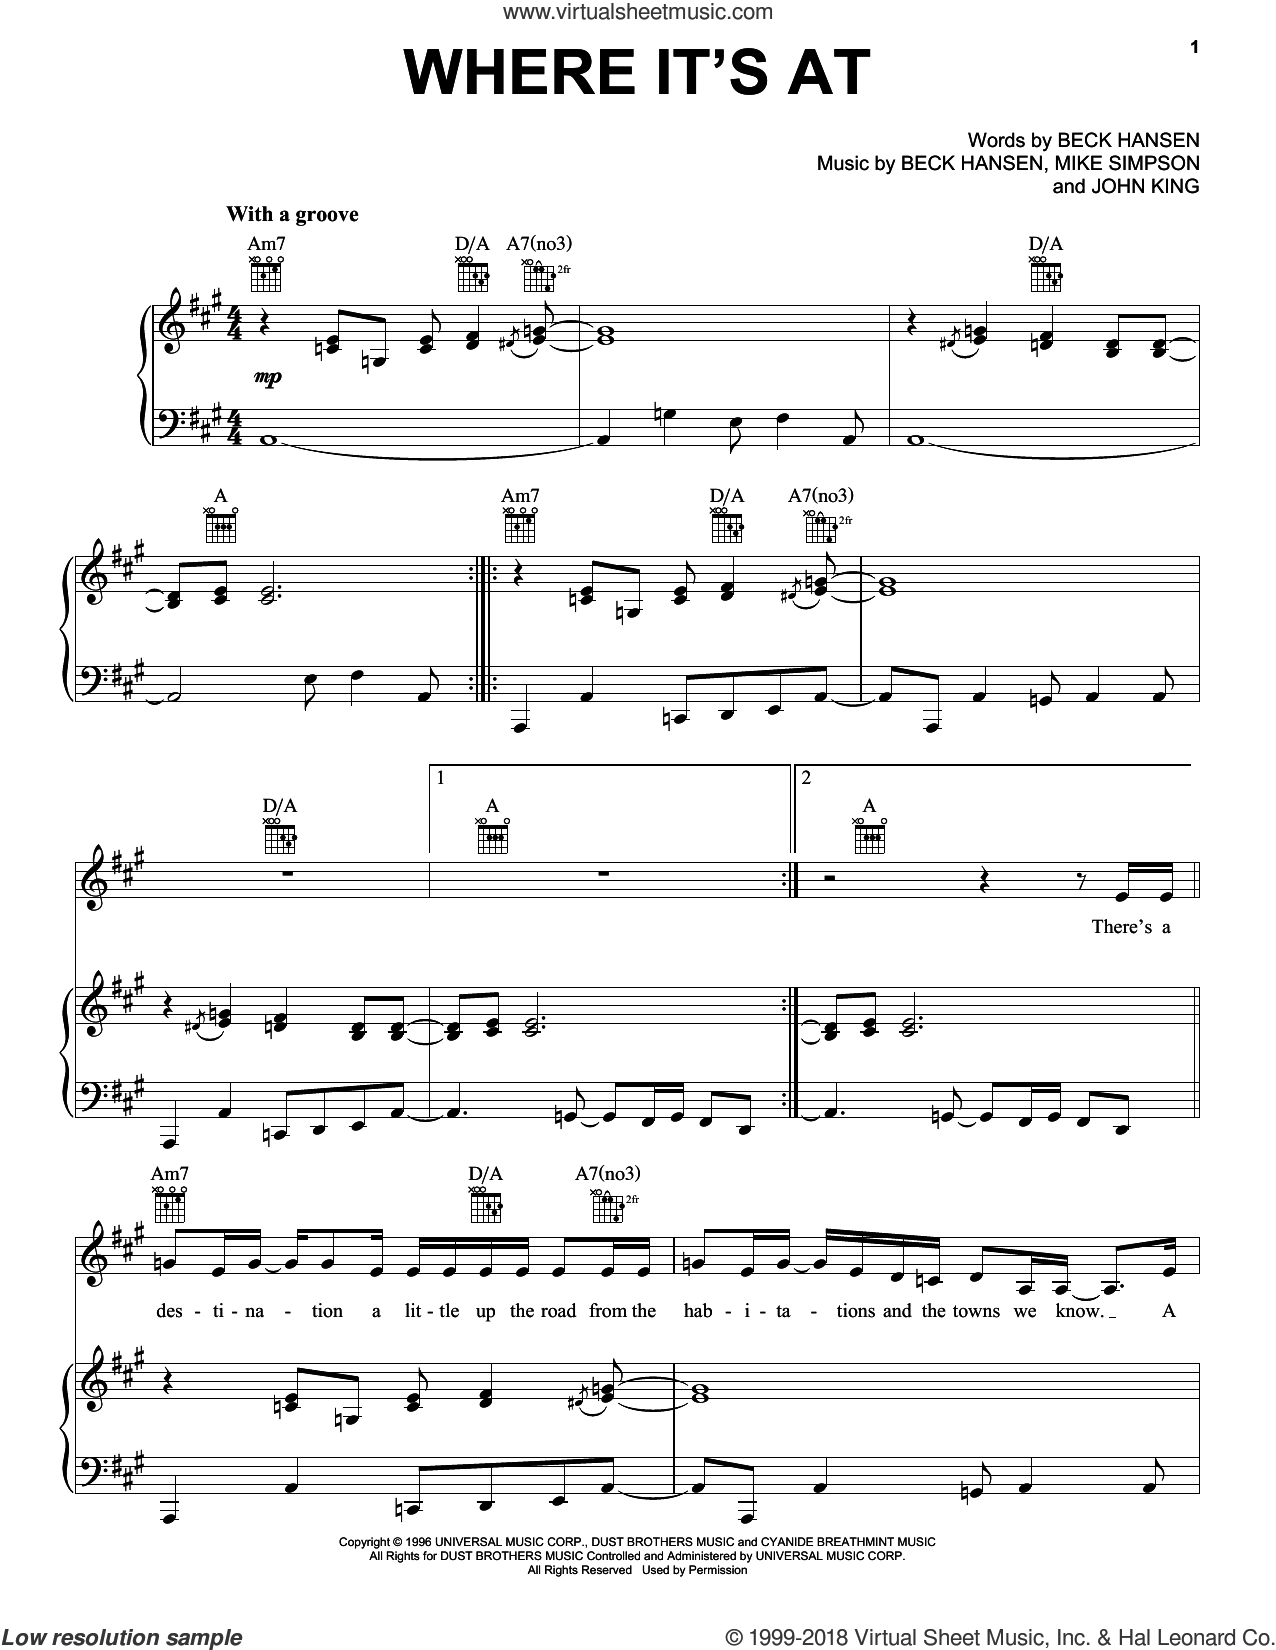 Where It's At sheet music for voice, piano or guitar by Mike Simpson